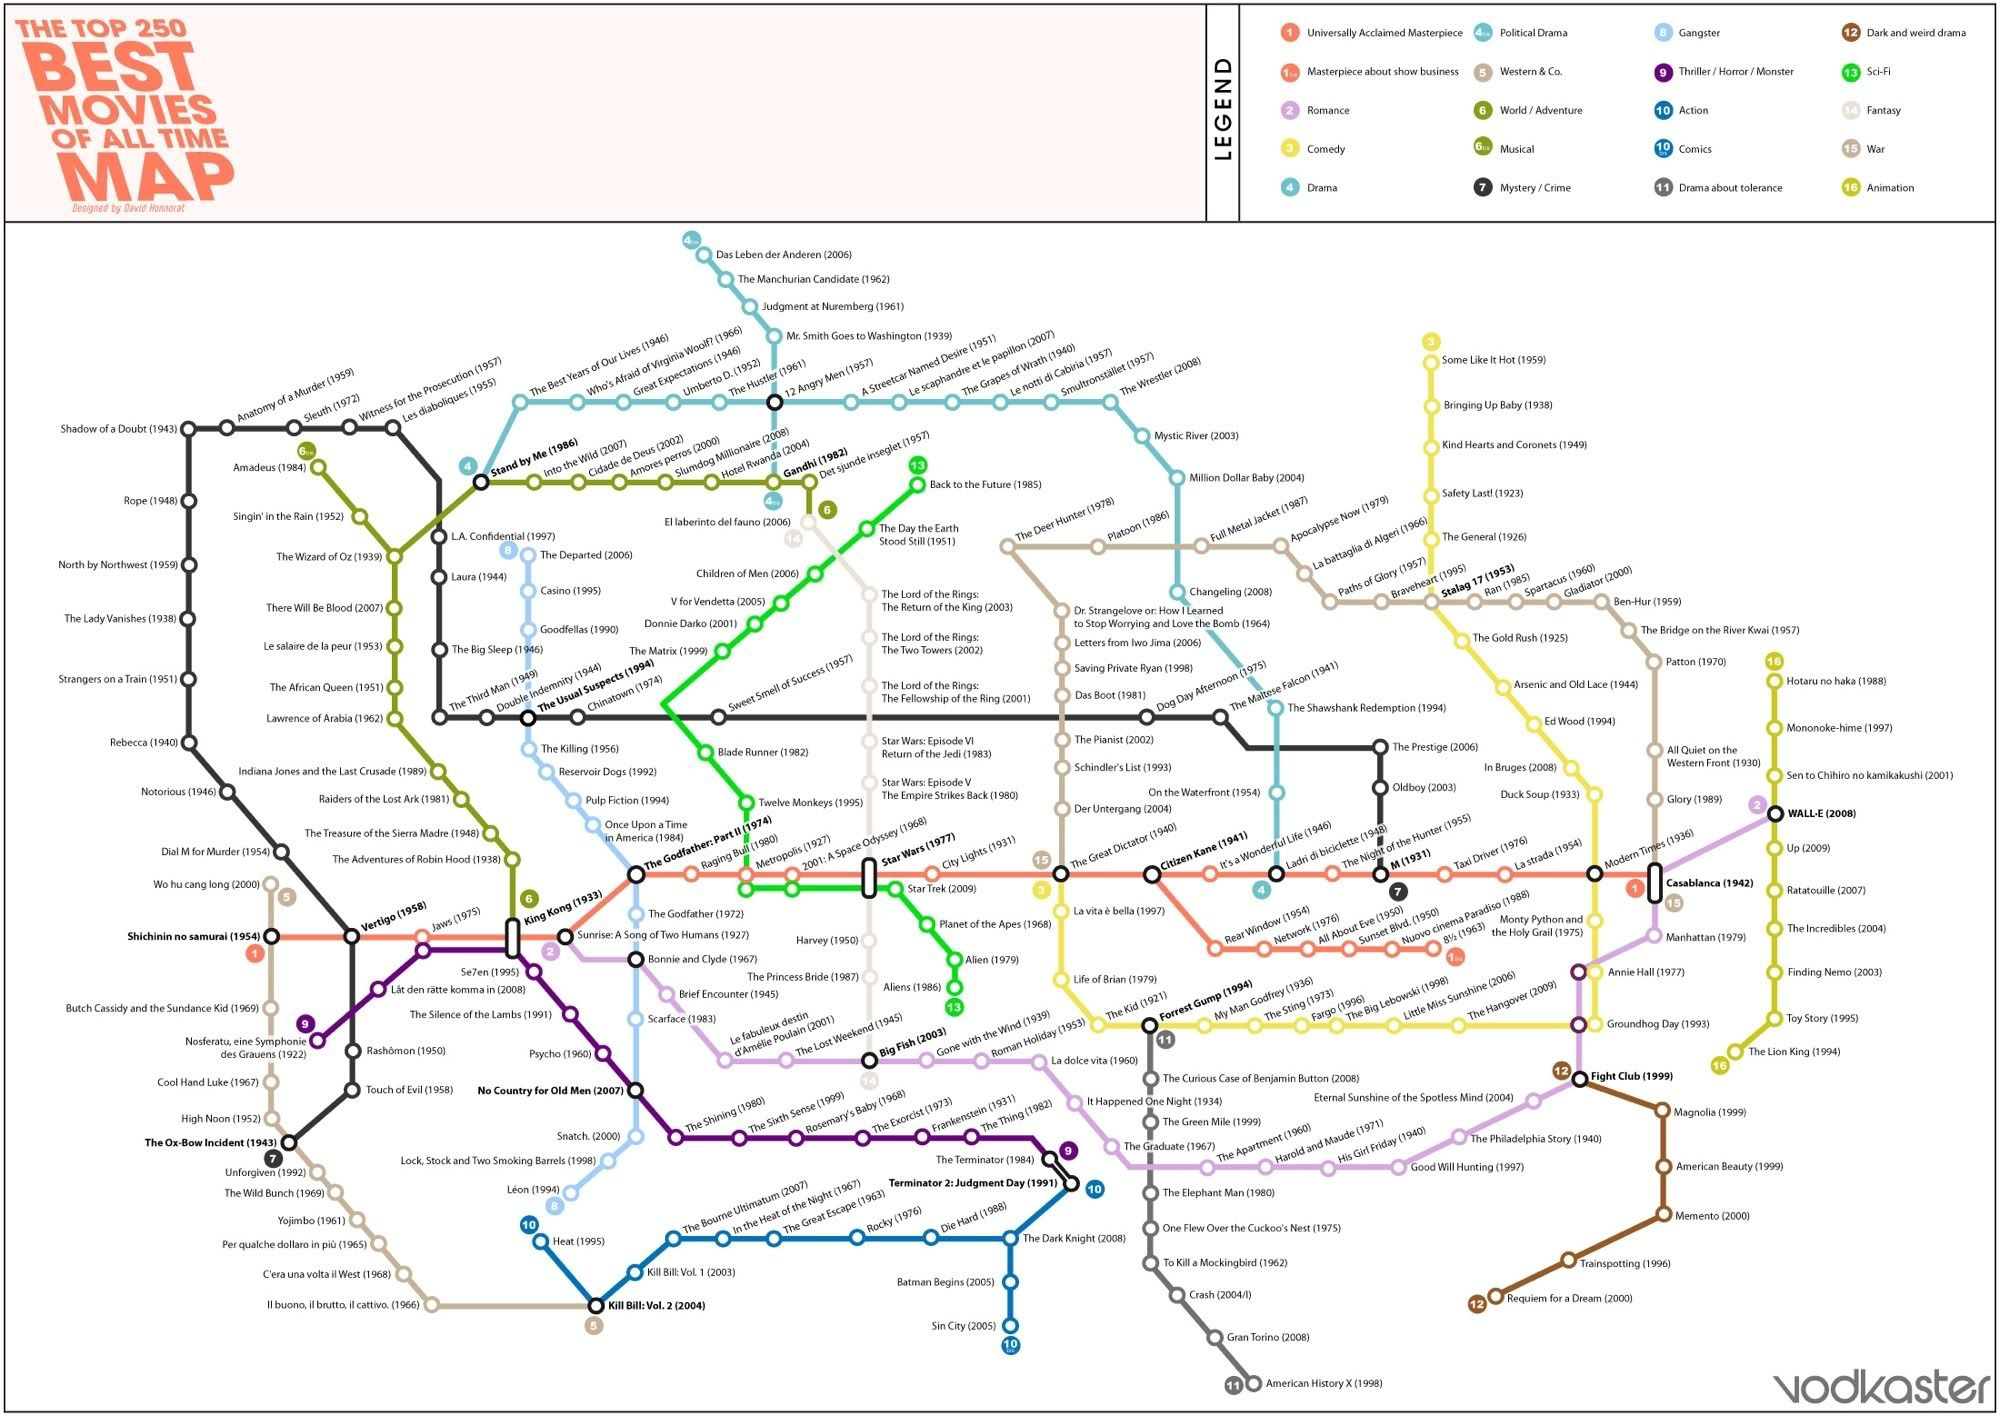 The Best 200 Movies Of All Time Map Movie Map Movie Infographic Good Movies